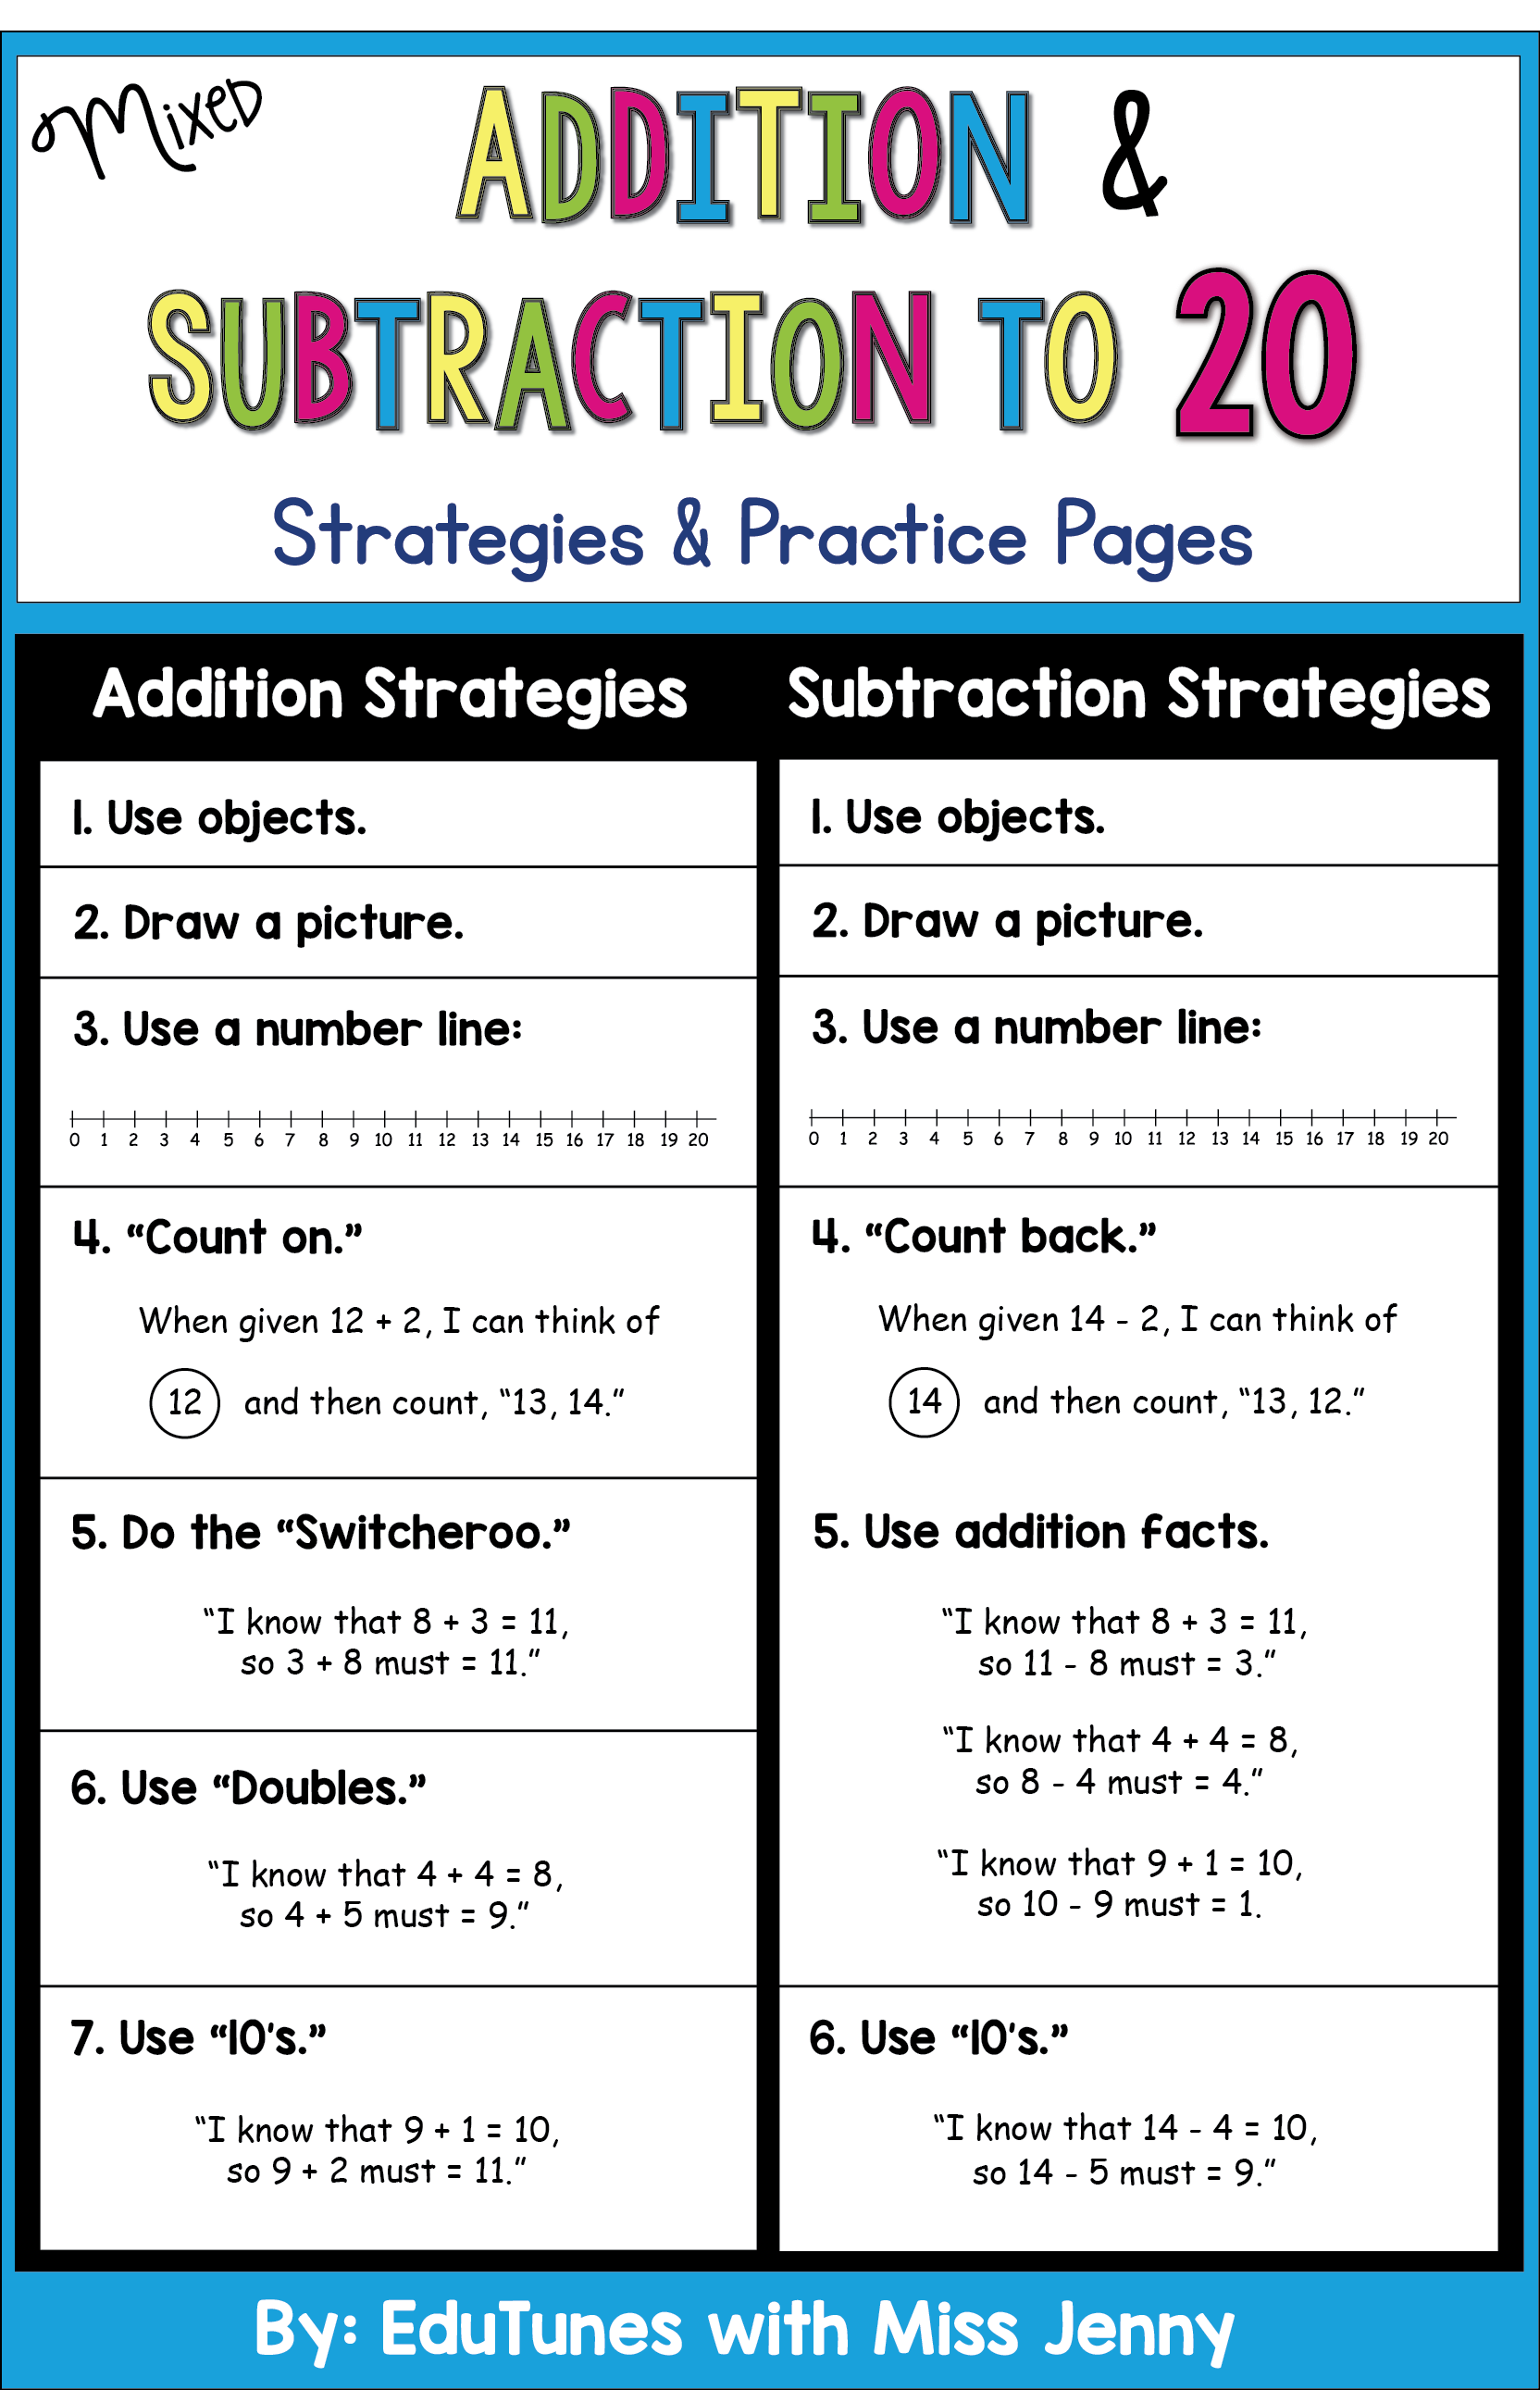 Addition and Subtraction Within 20 Strategies and Worksheets   Addition and  subtraction [ 2582 x 1664 Pixel ]